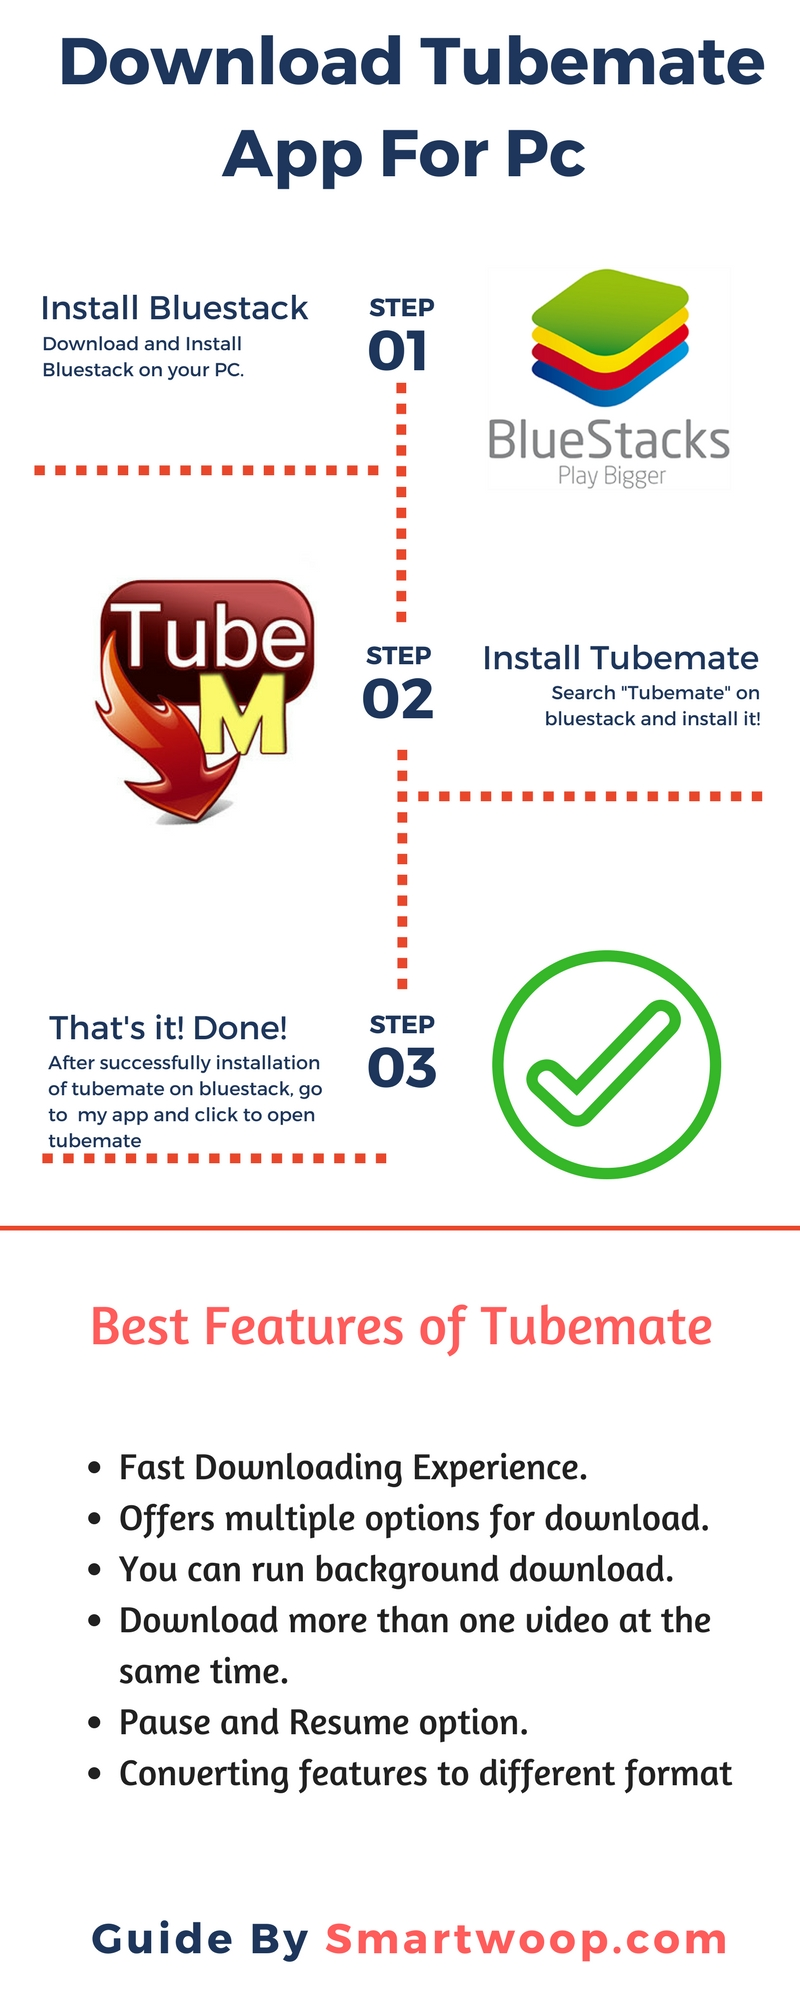 Infographic to Download Tubemate For Pc